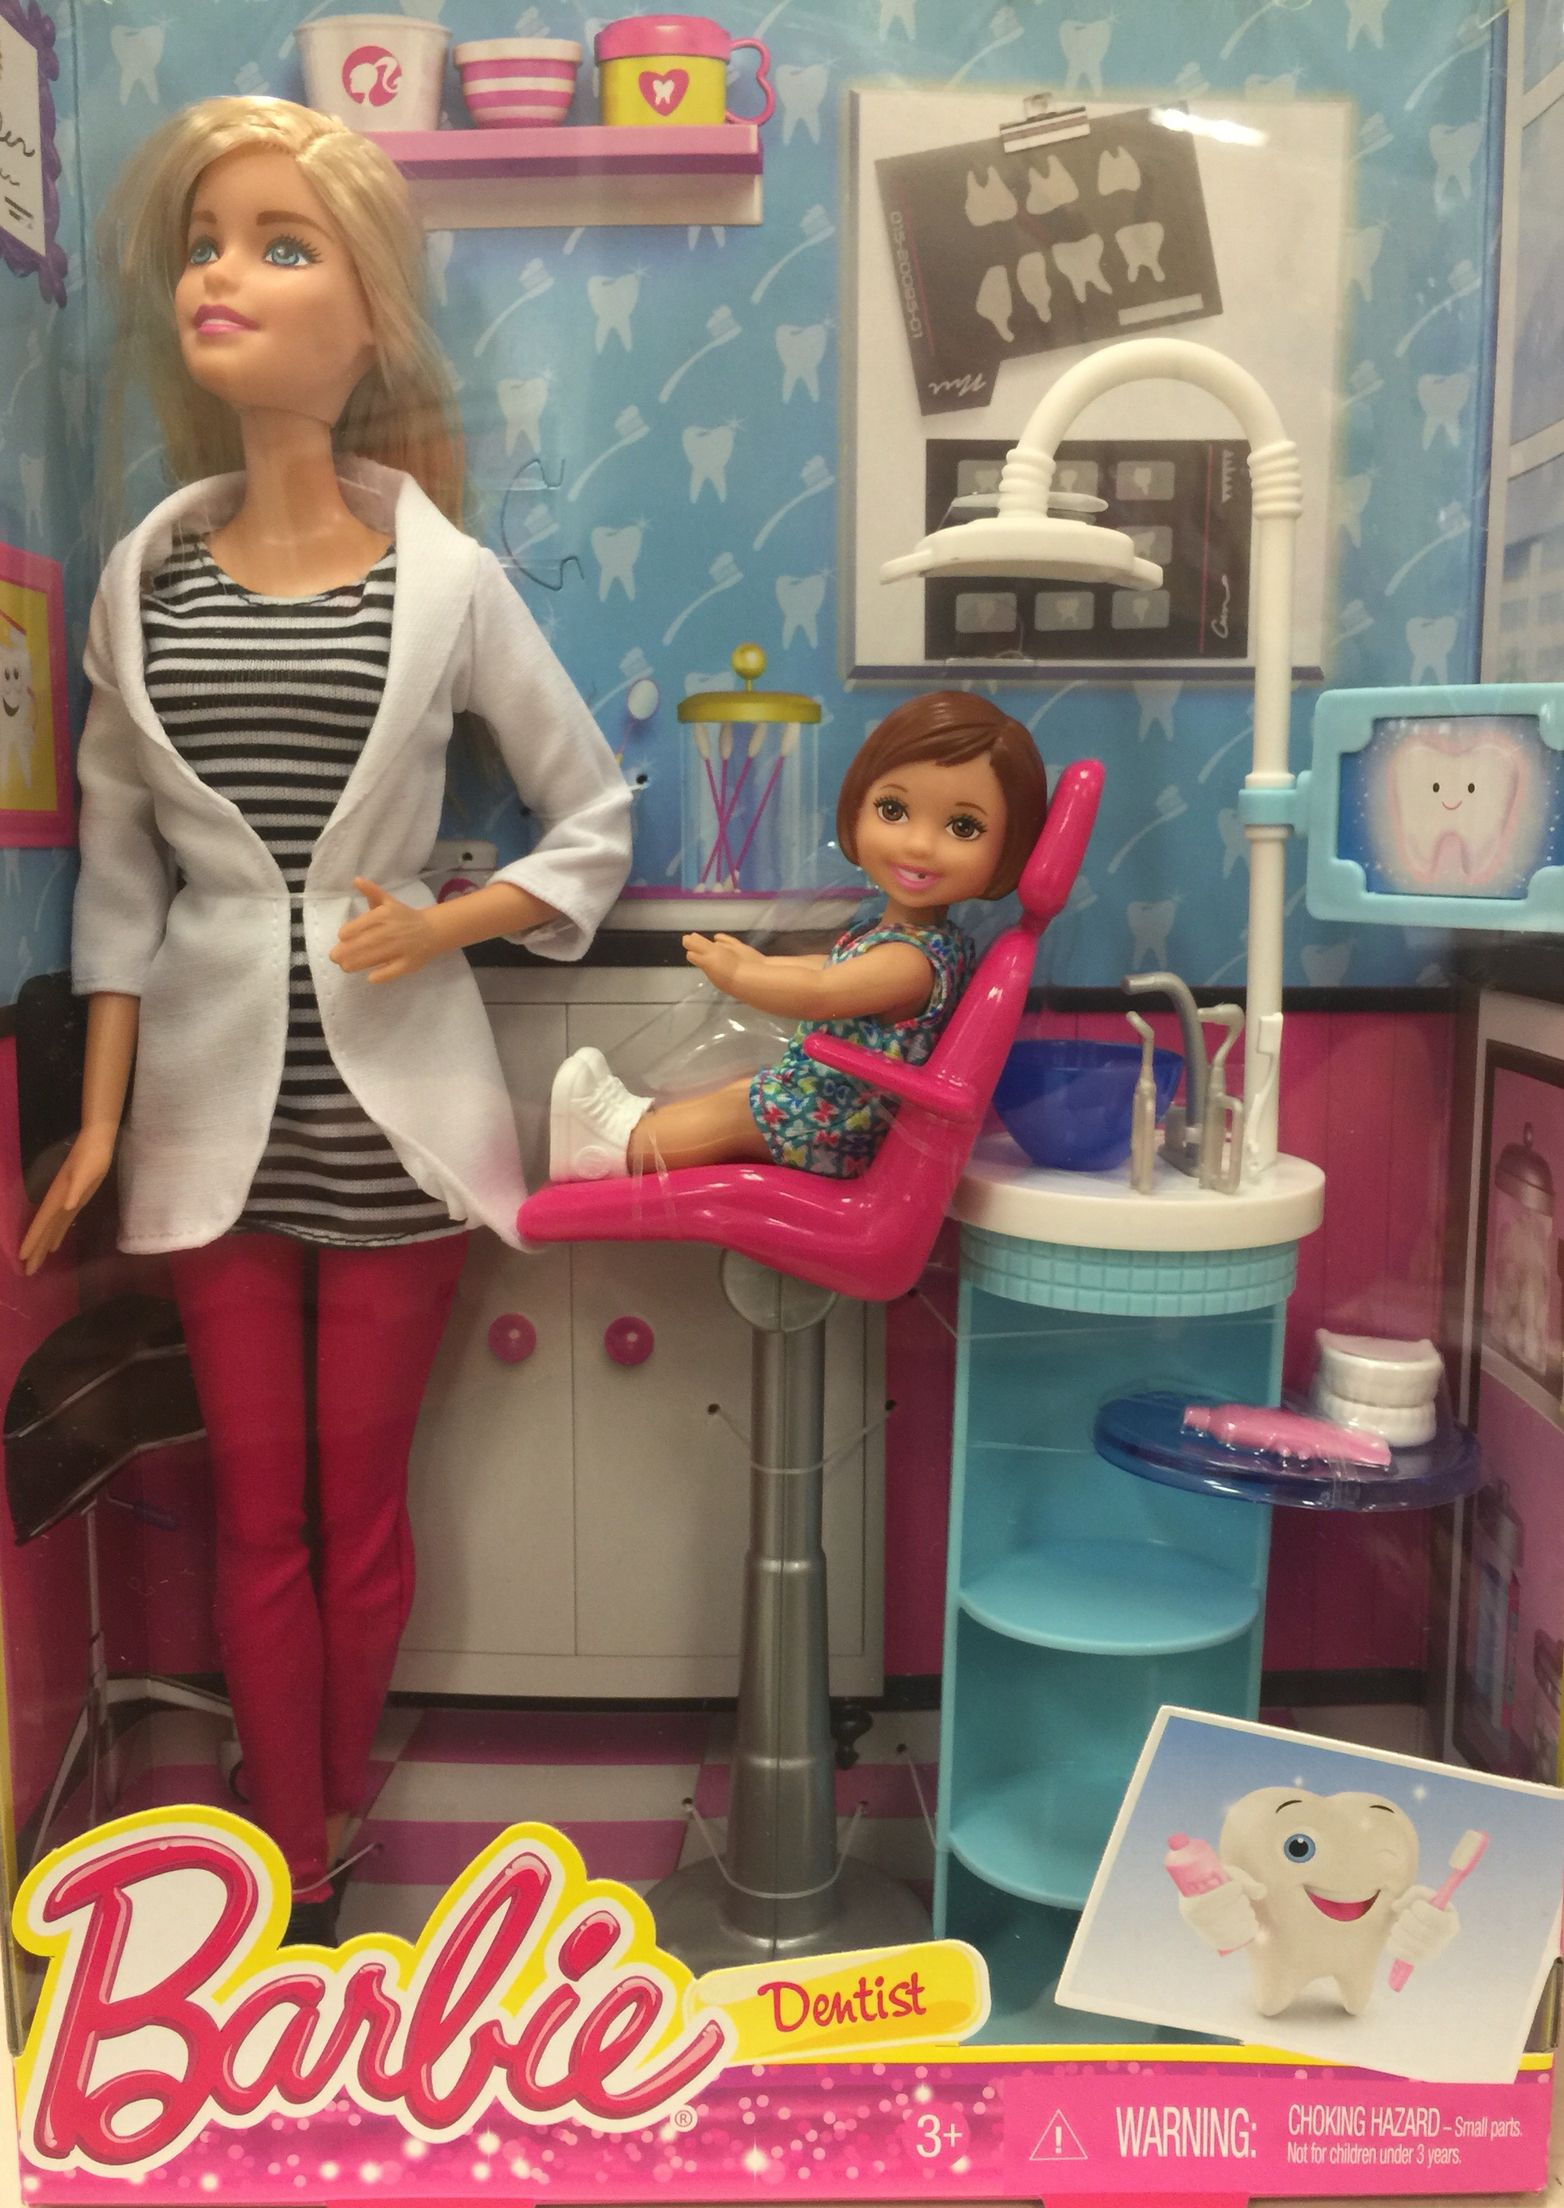 Barbie deluxe furniture stovetop to tabletop kitchen doll target - How Many Barbie Dentist Do You Have To Buy Your Granddaughter To Make Sure She